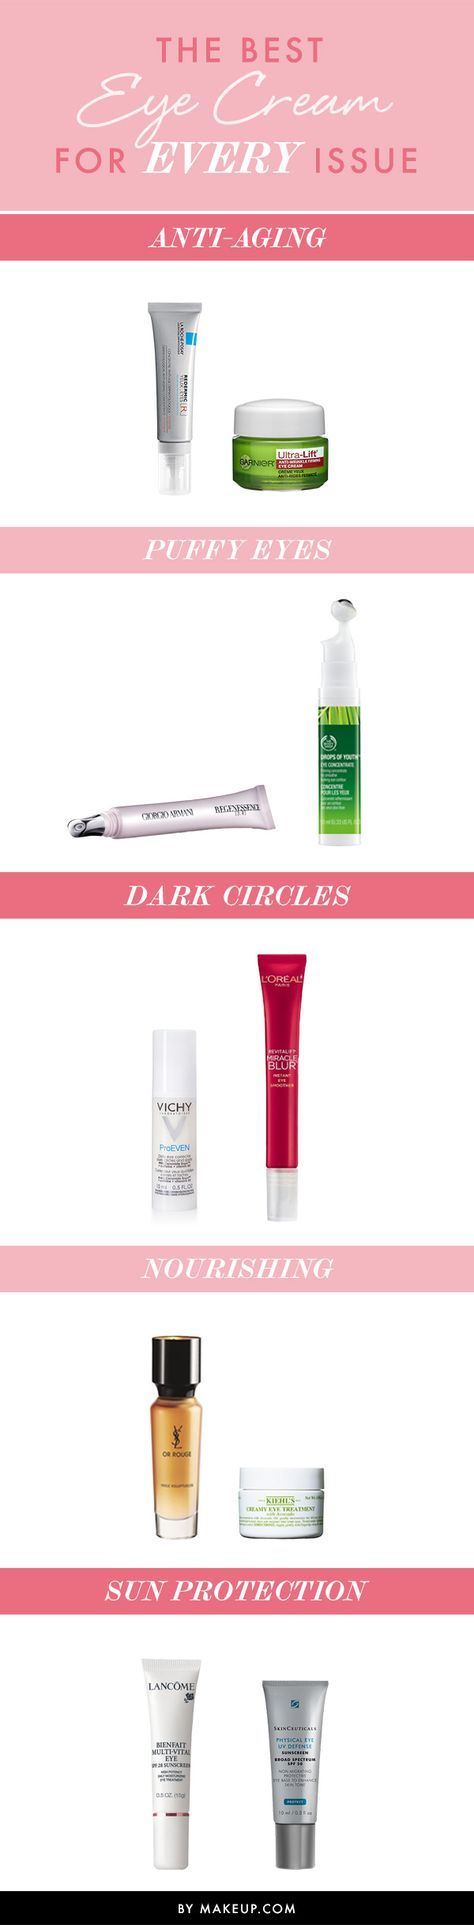 The Best Eye Cream for EVERY Issue, My issue? Dark circles. This suggest Loreal Miracle blur.